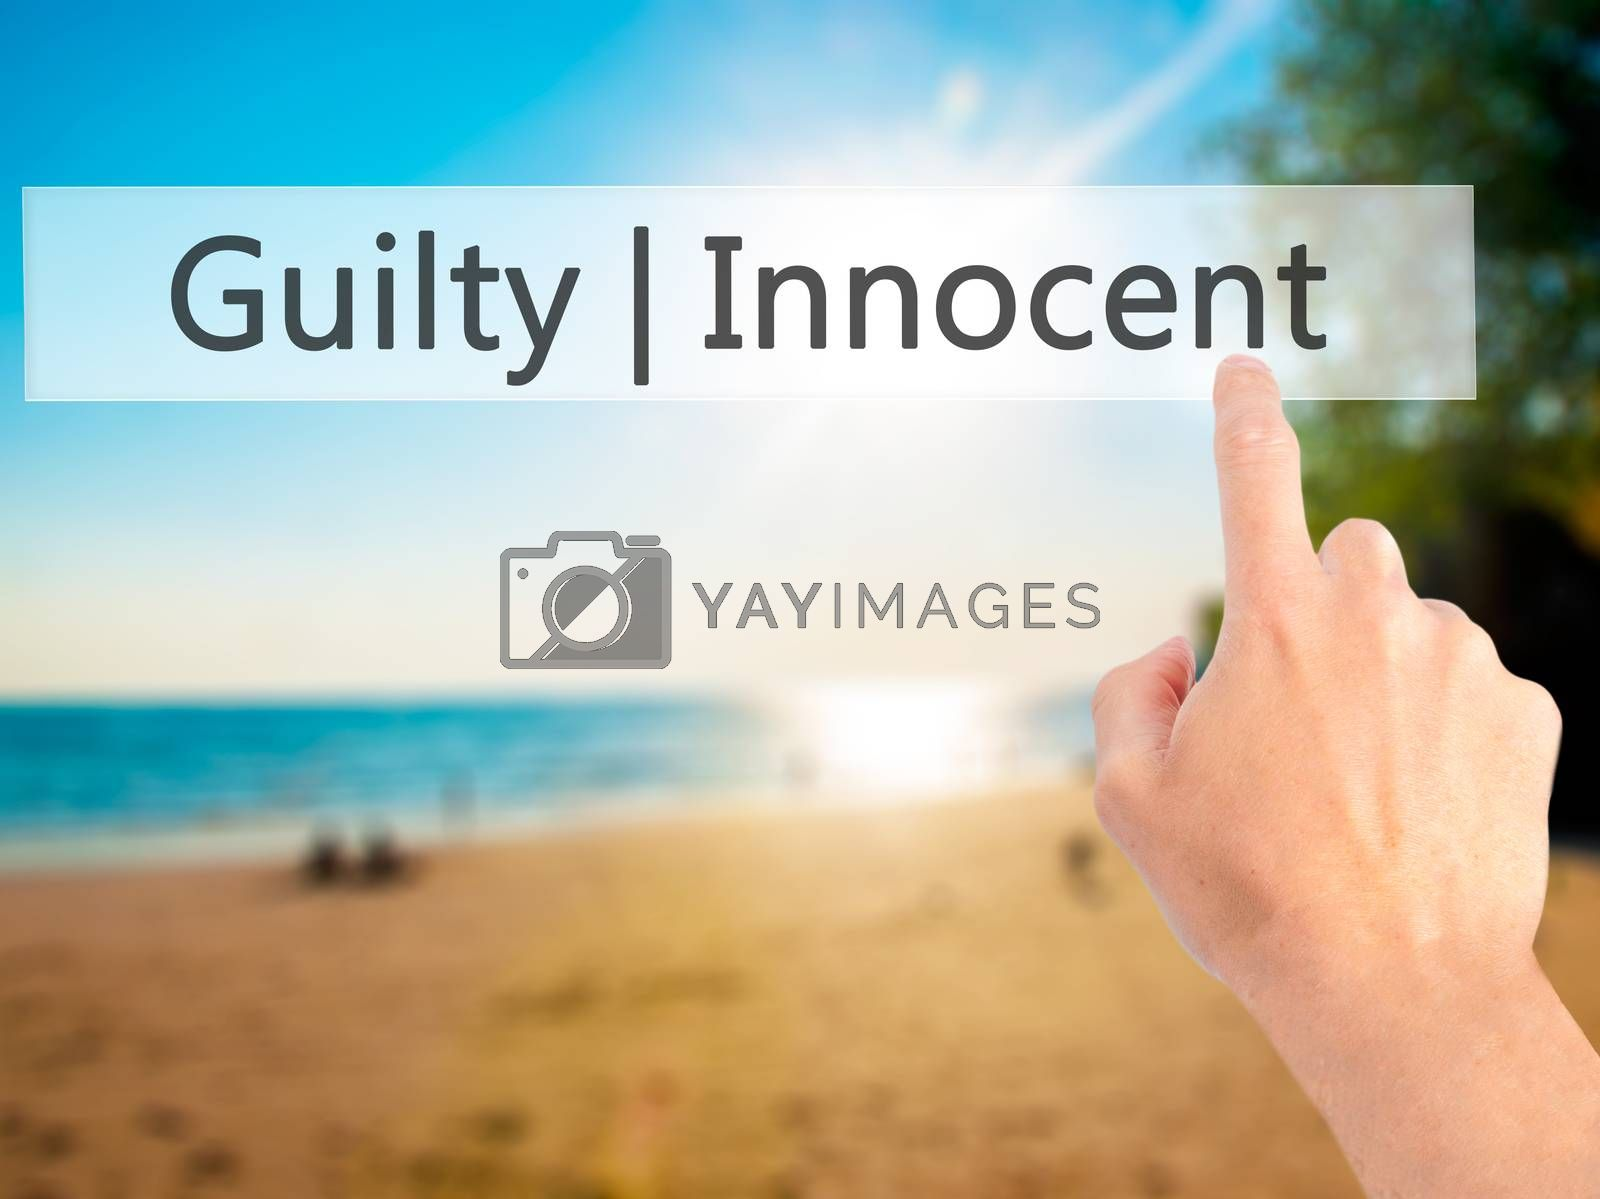 Guilty Innocent - Hand pressing a button on blurred background c by jackald